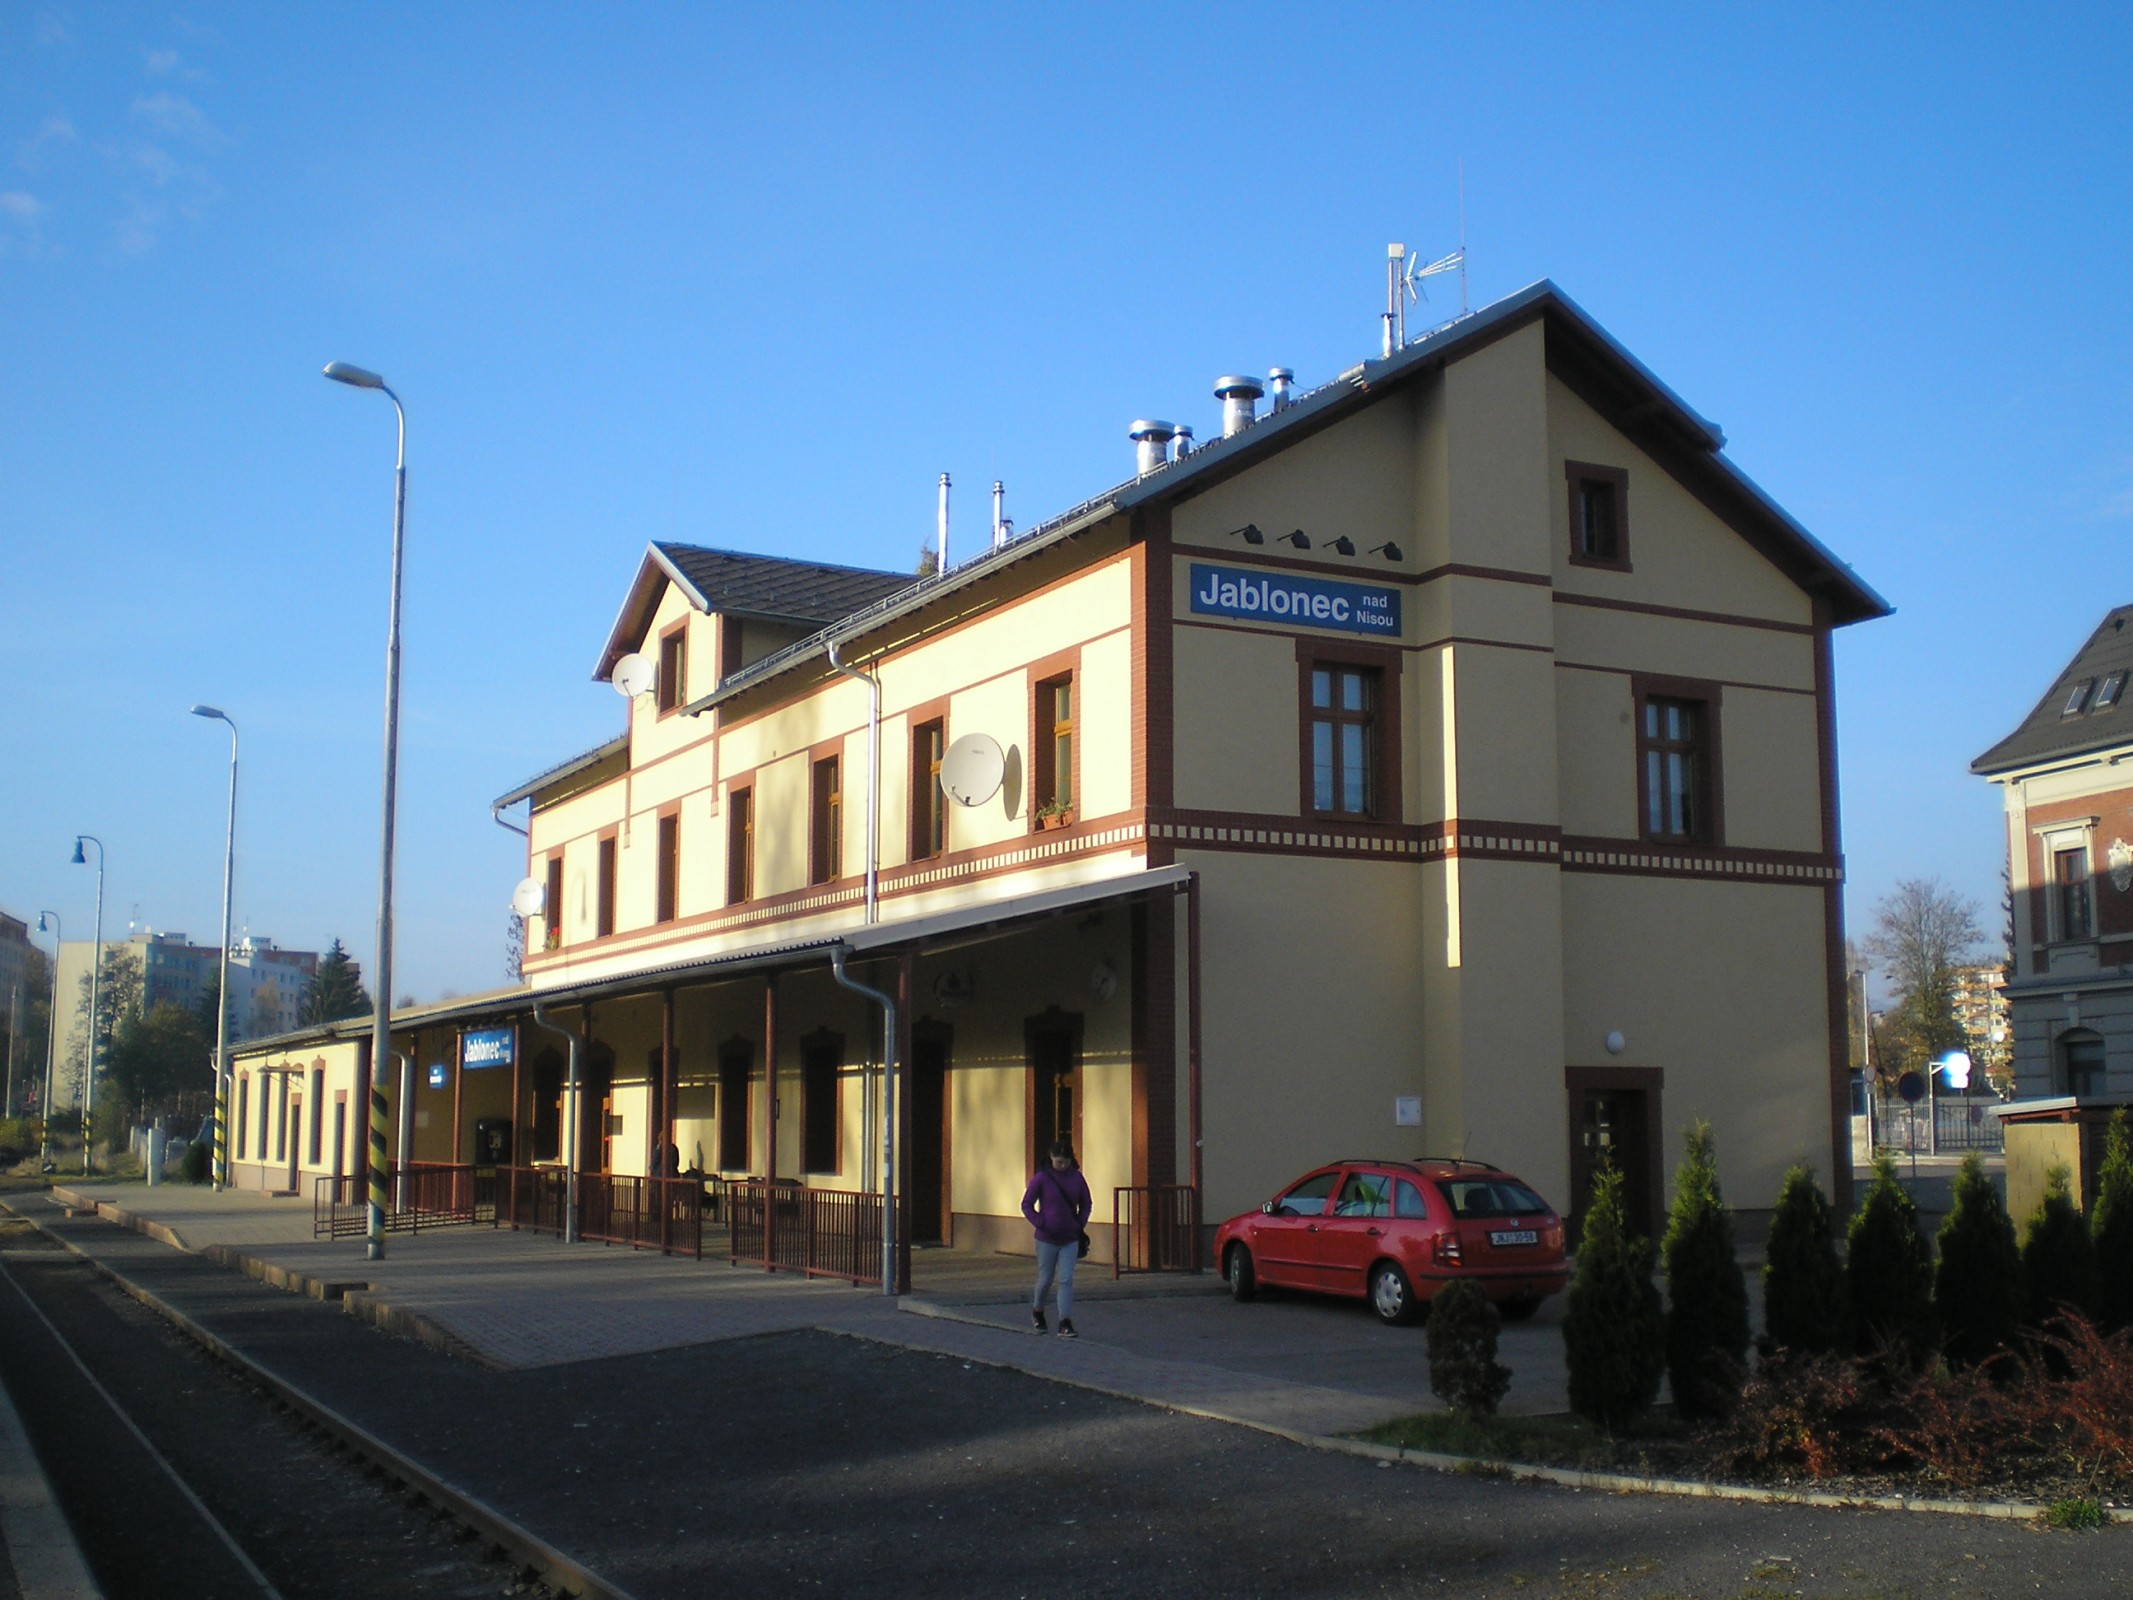 jablonec nad nisou chat Jablonec nad nisou, jablonec nad nisou 7,071 likes 75,063 were here jablonec nad nisou, known locally as jablonec, is a town in northern bohemia, the.